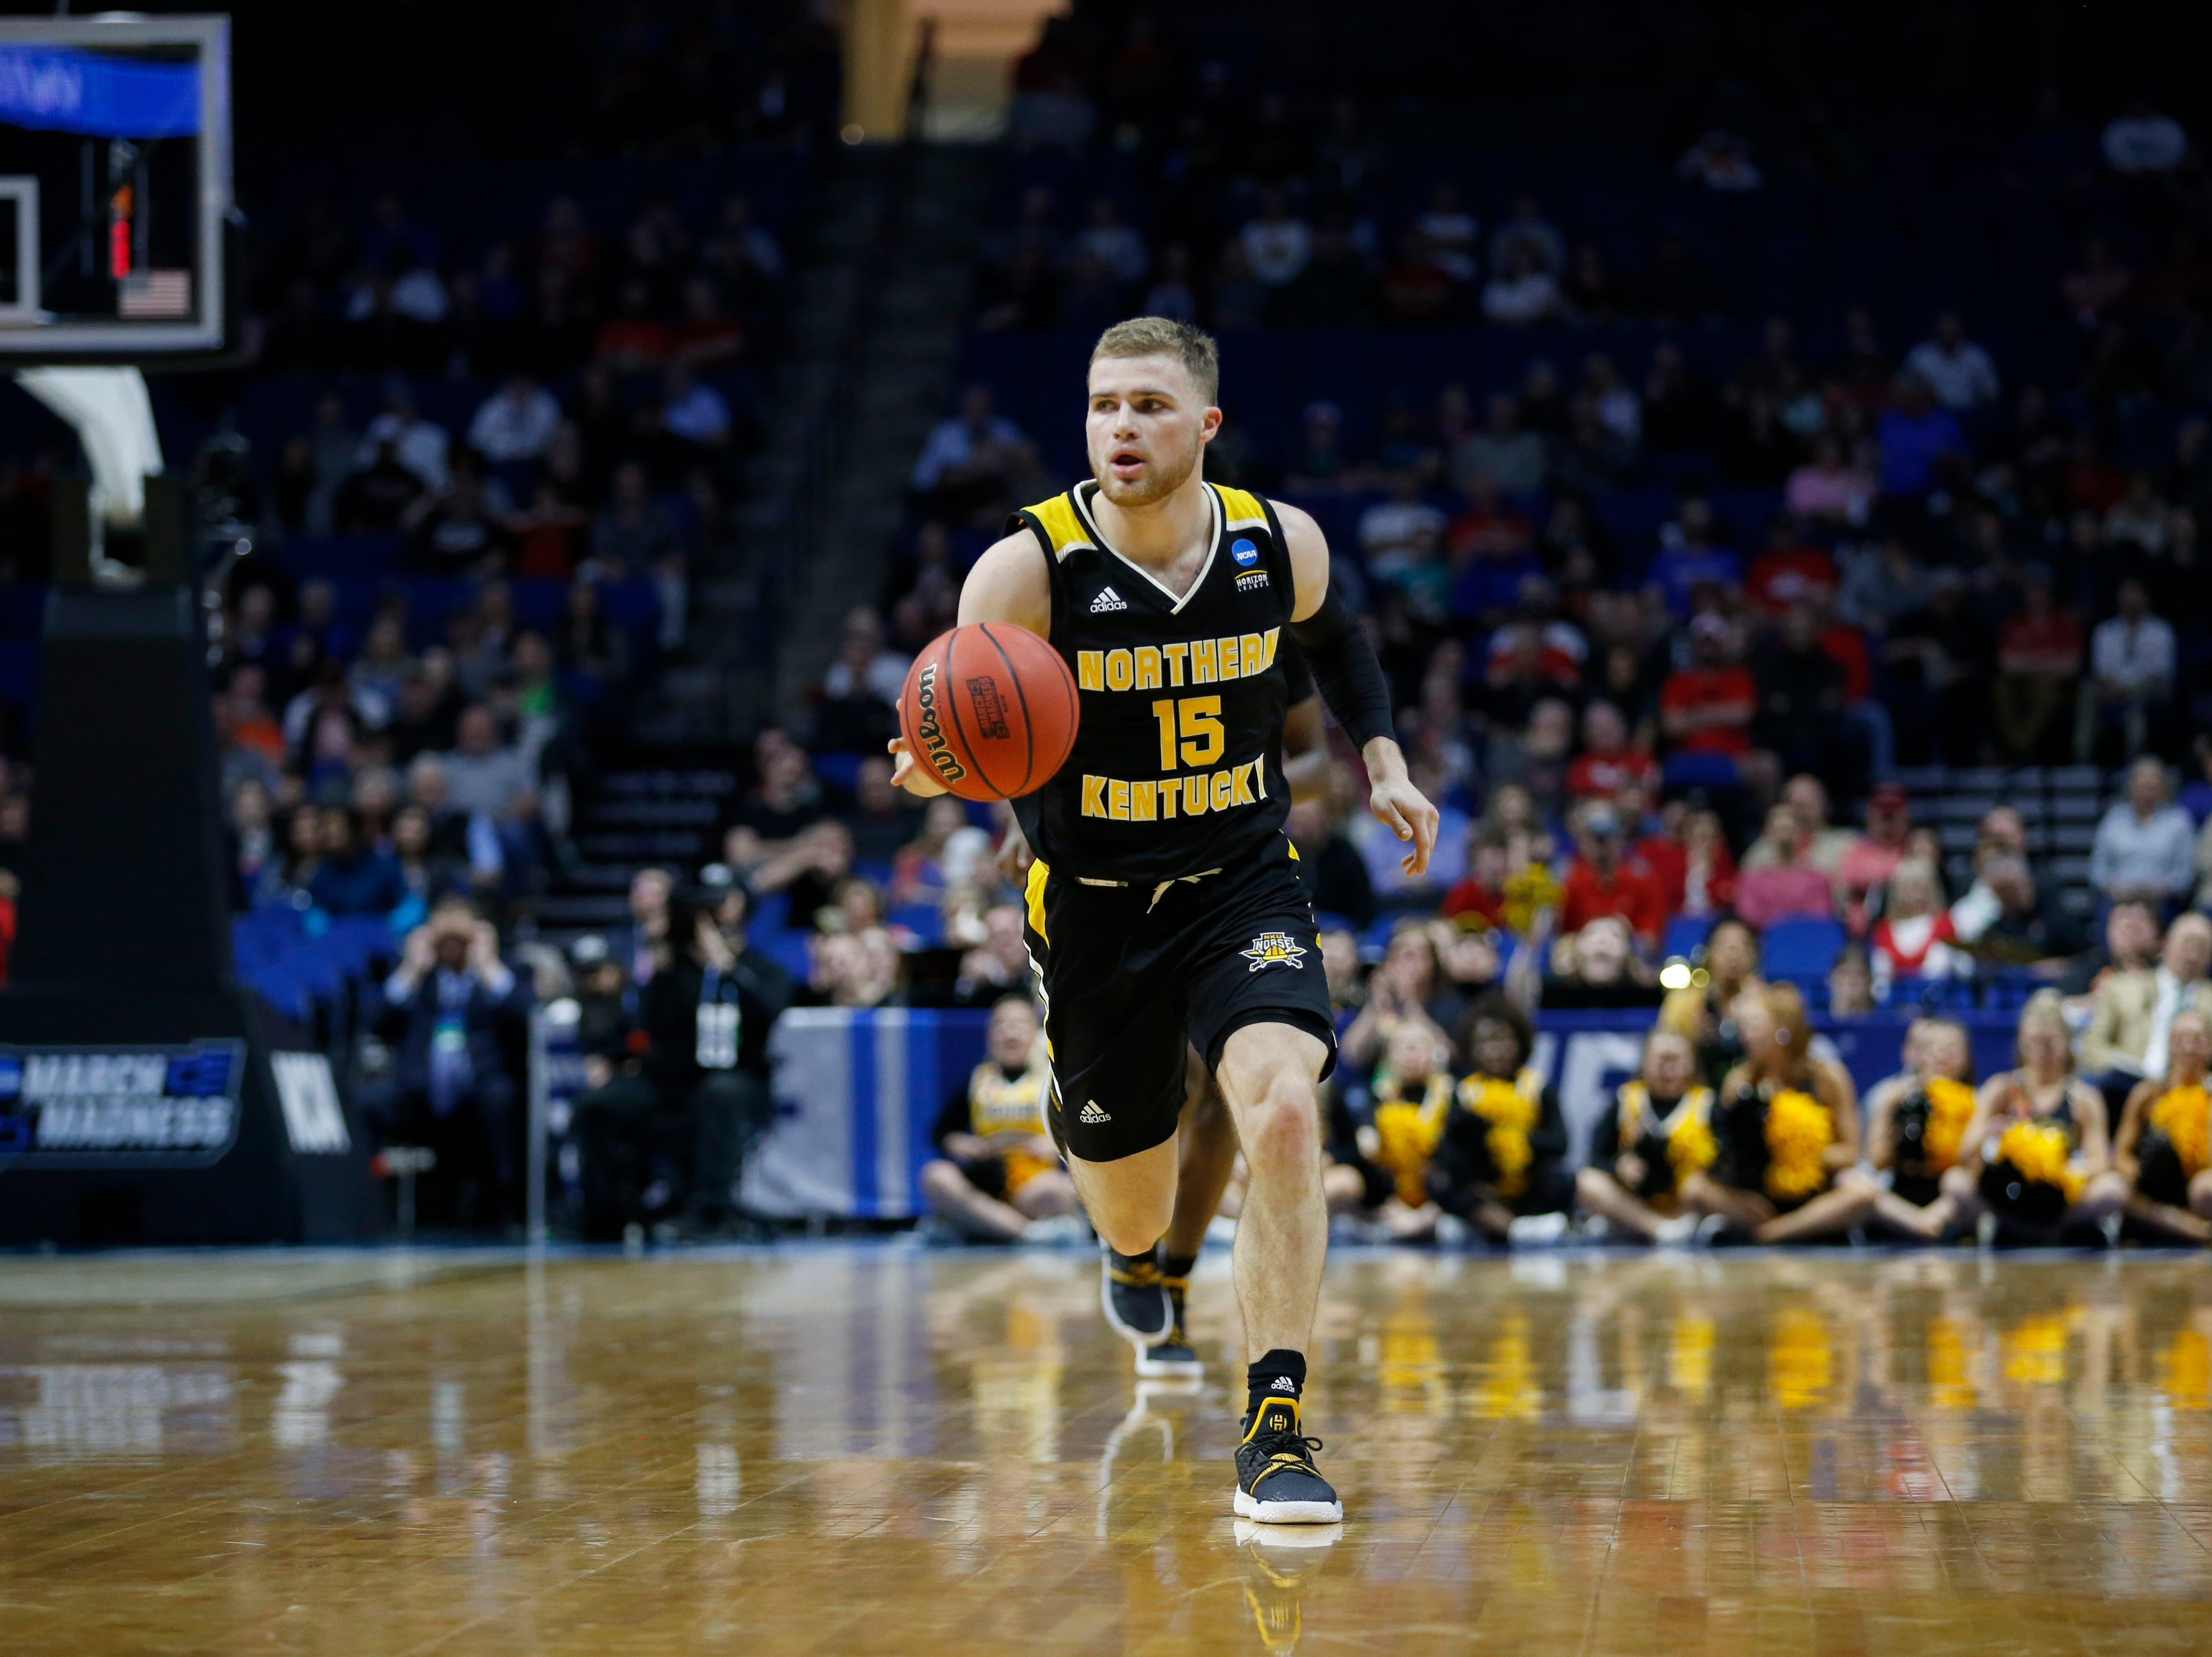 Northern Kentucky Norse guard Tyler Sharpe (15) drives down court in the first half of the NCAA Tournament First Round game between the 14-seeded Northern Kentucky Norse and the 3-seeded Texas Tech Red Raiders the BOK Center in downtown Tulsa on Friday, March 22, 2019. Texas Tech led 30-26 at halftime.